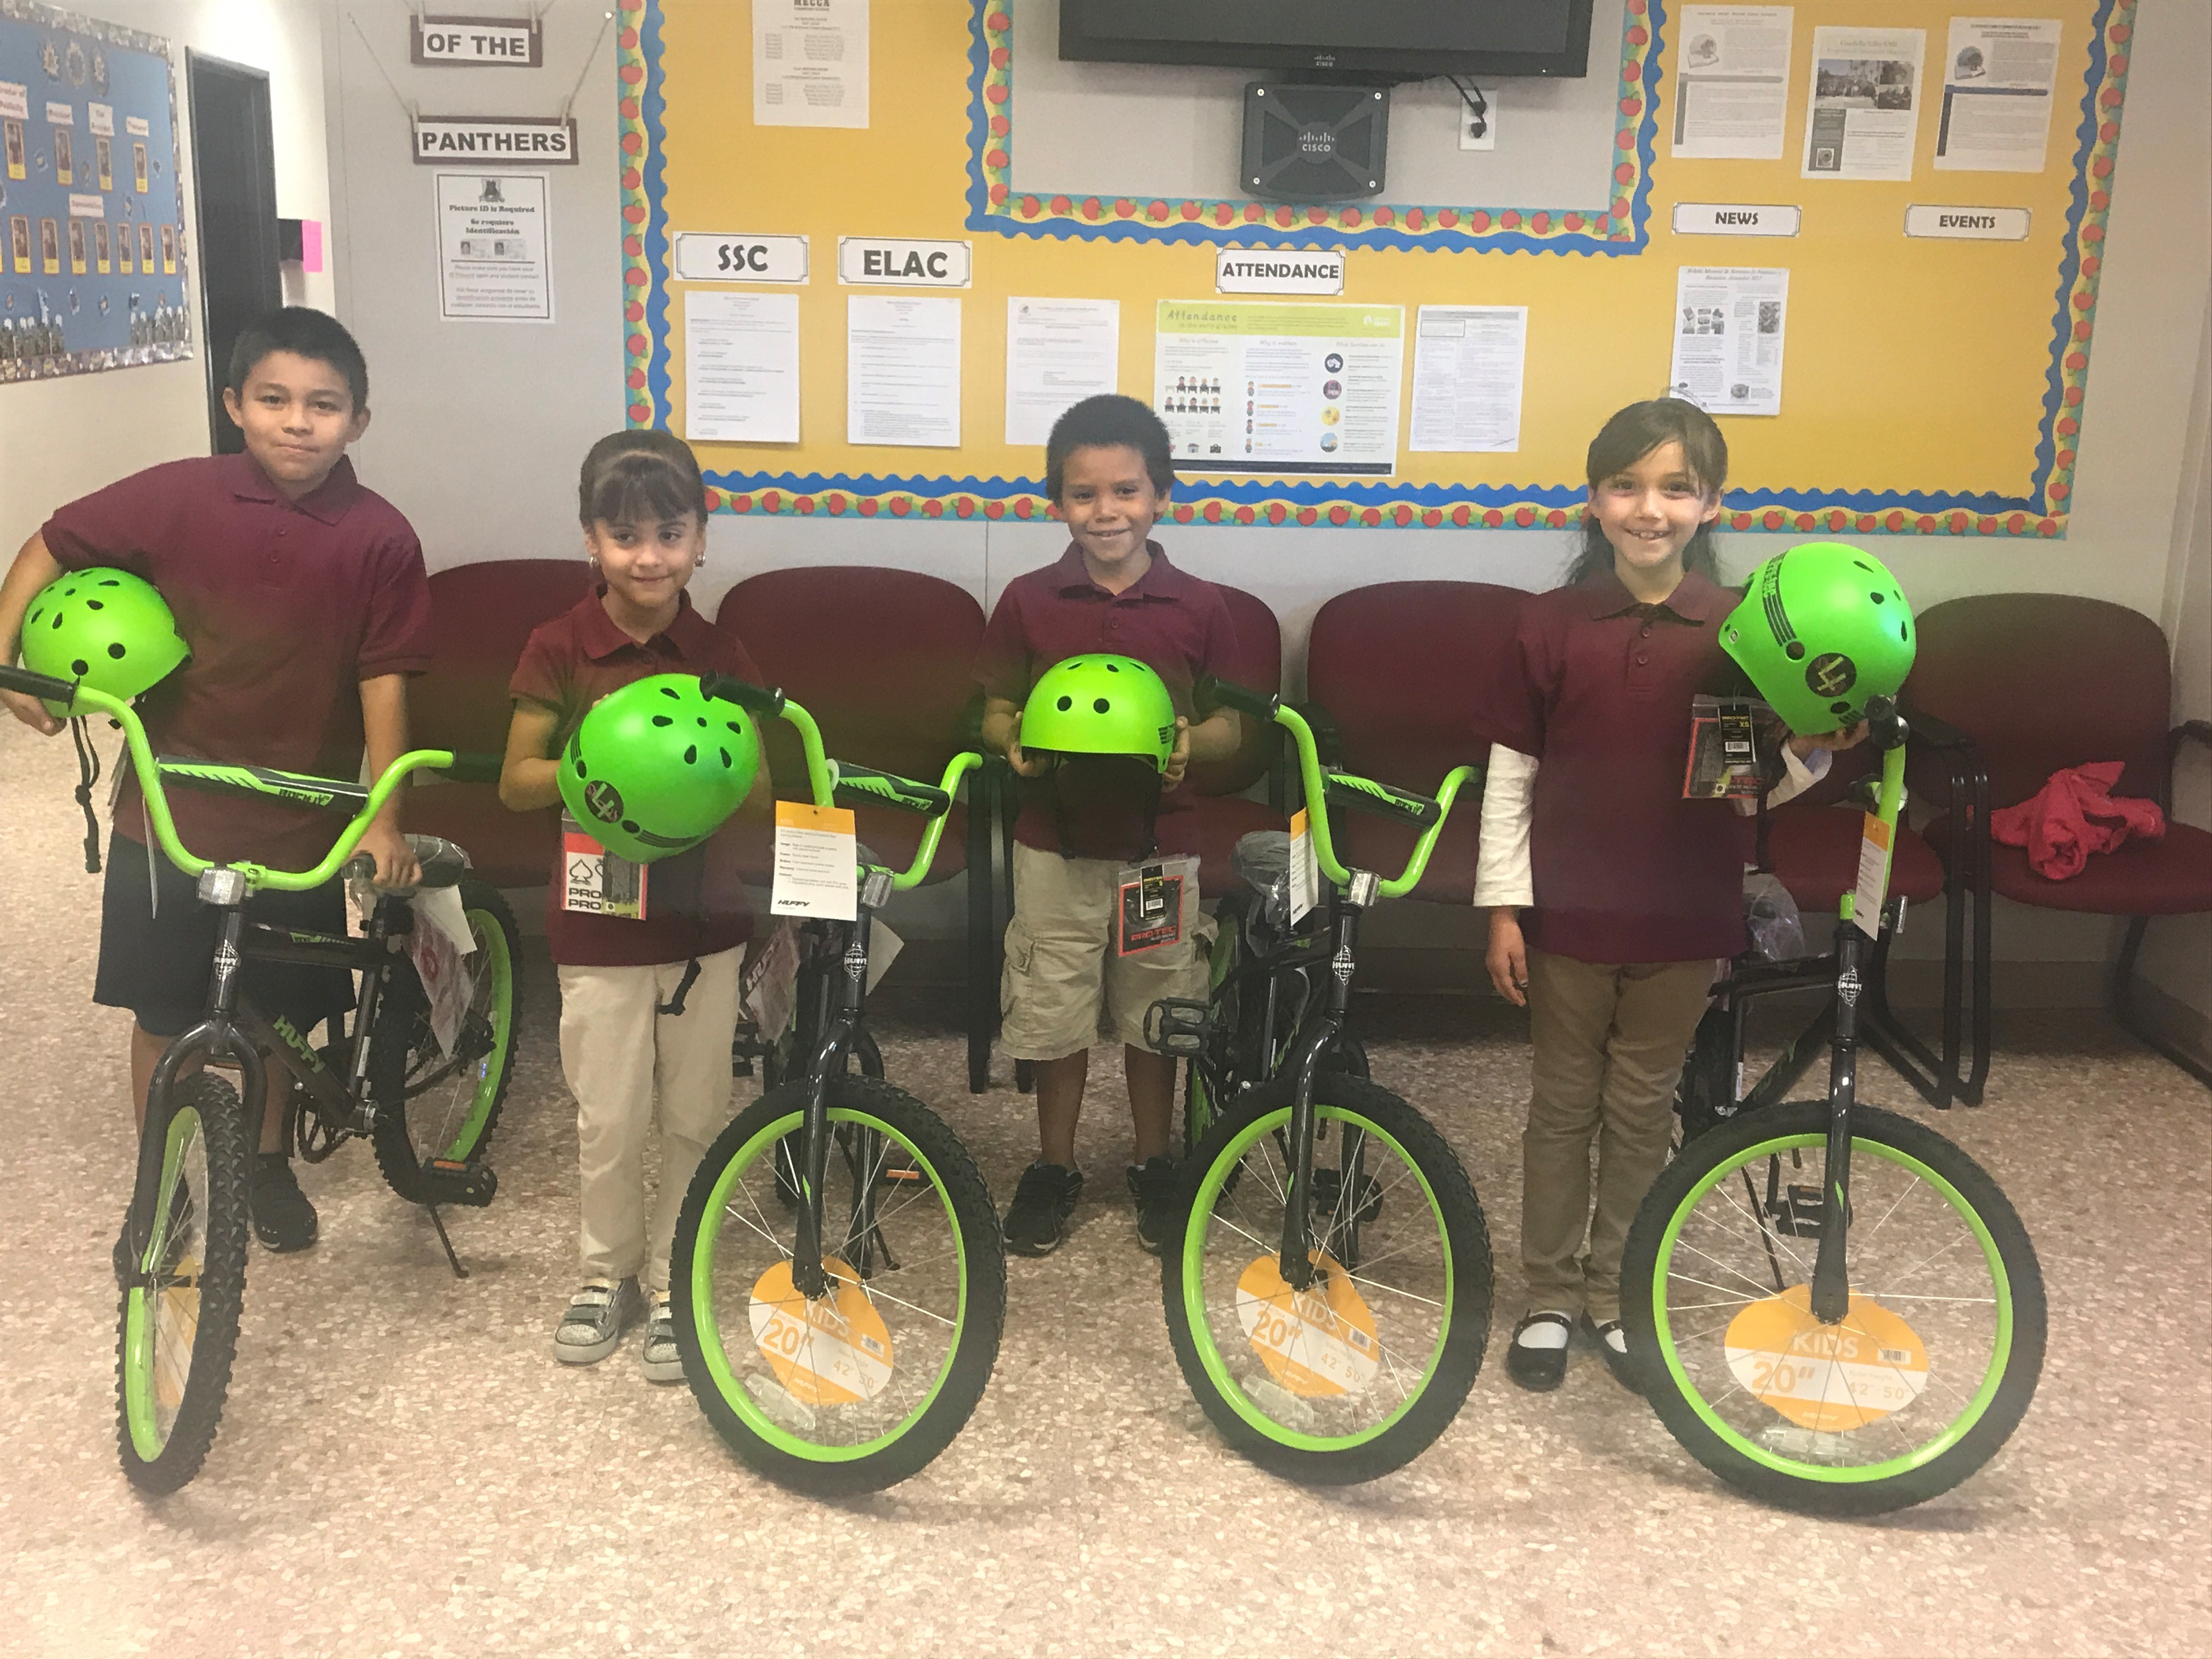 Bike Raffle - Perfect Attendance